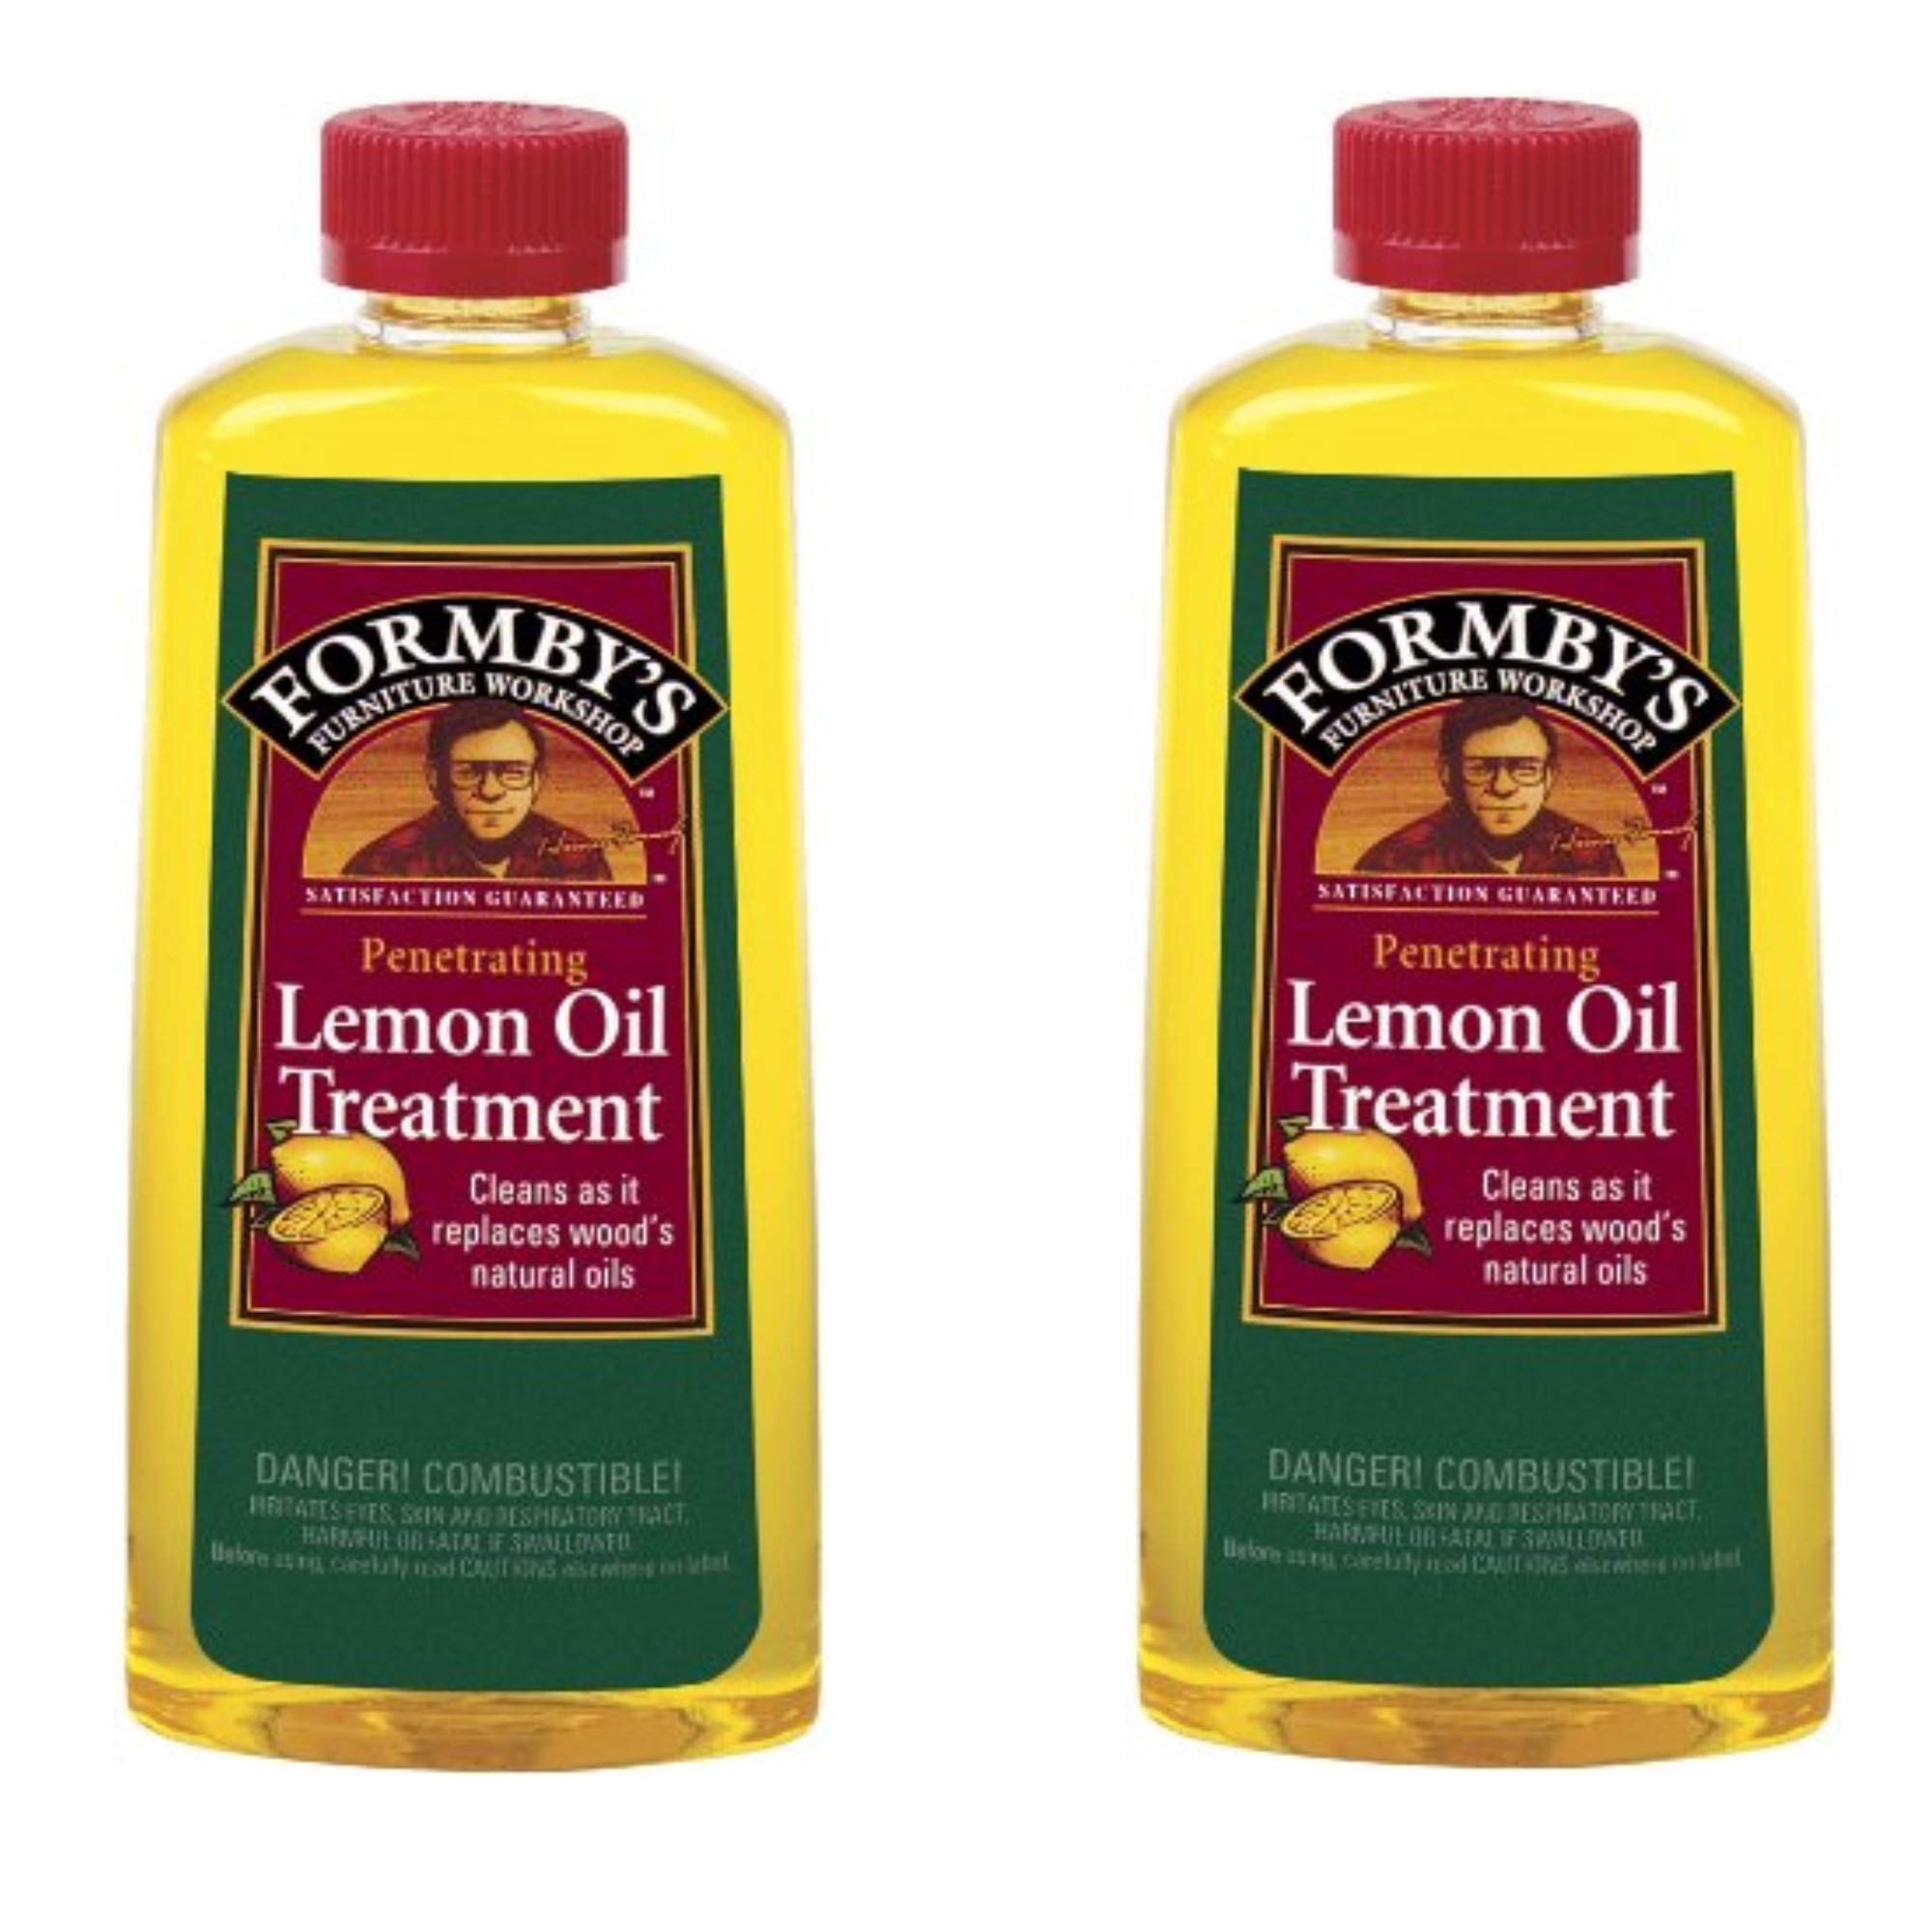 Formby 30115 s 300115 Lemon Oil Treatment, 16-Ounce - 2 PACK